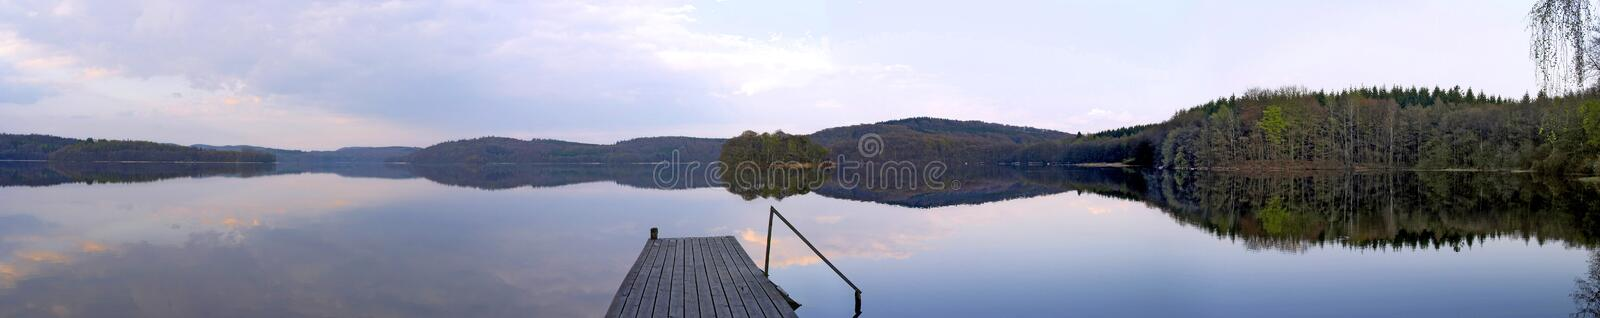 Panorama de lac sweden photos stock